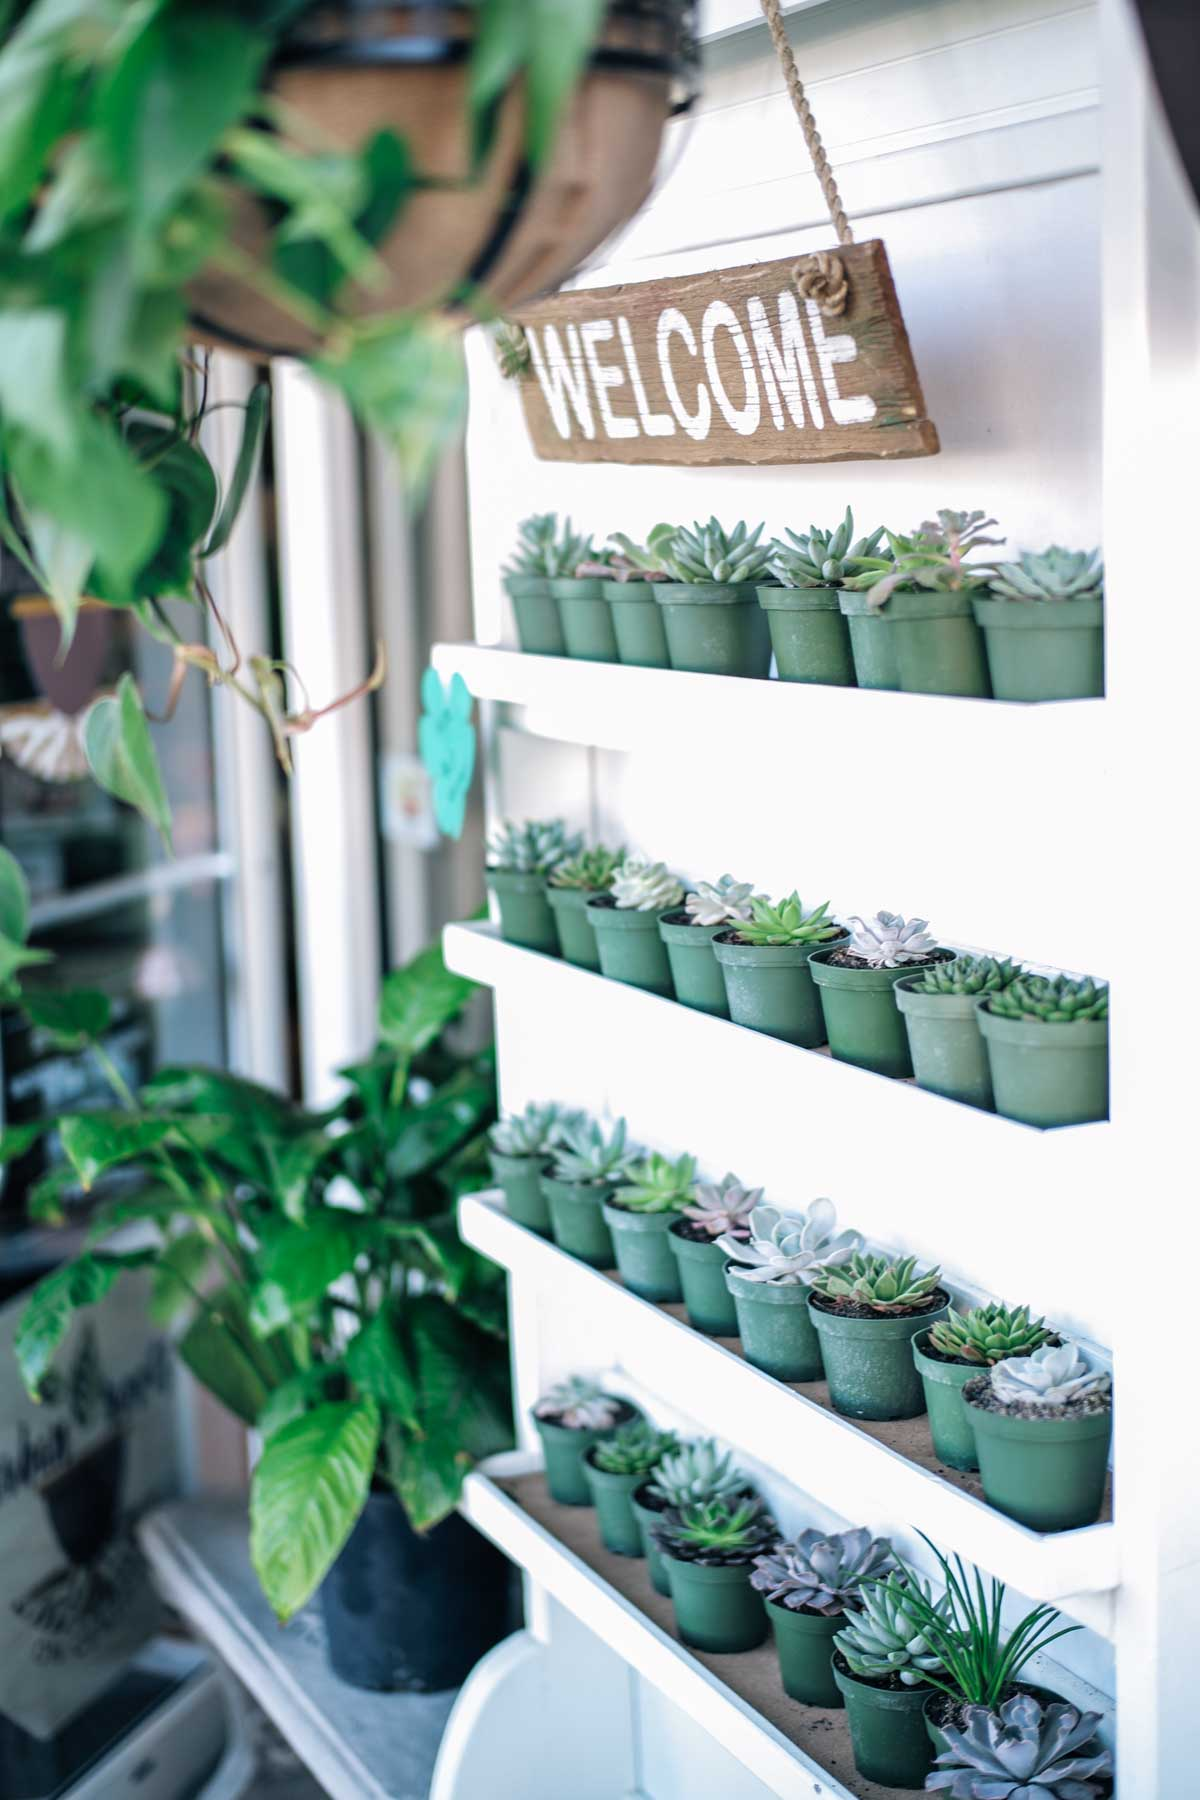 Jess Ann Kirby visits a plant shop on Central Ave in Saint Petersburg, Florida